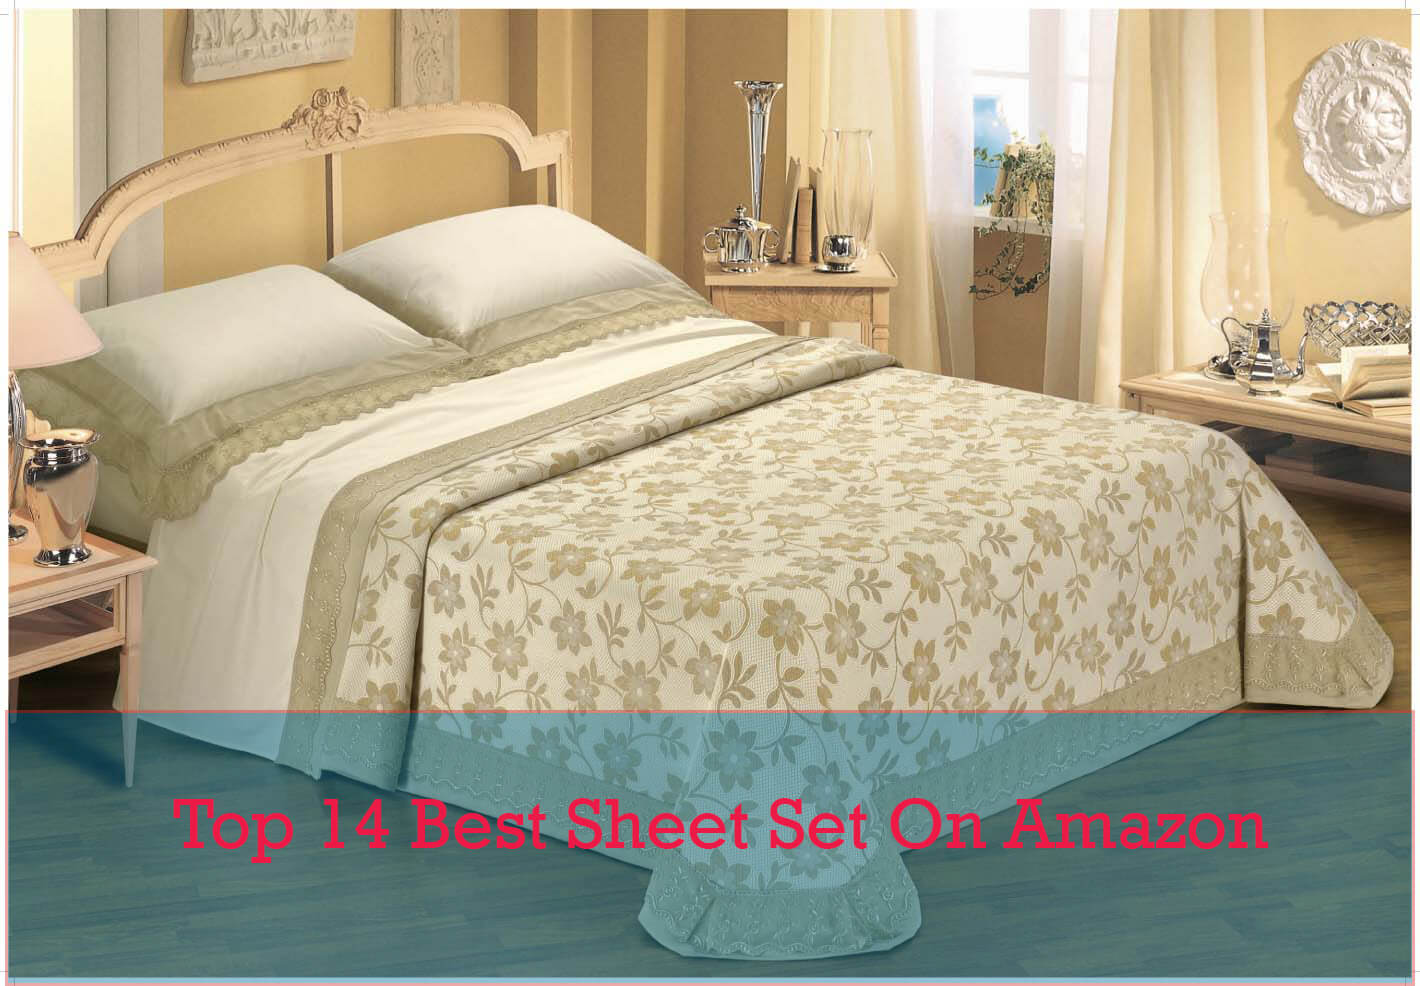 Top 14 Best Seller of Best Sheet Set on Amazon in 2017